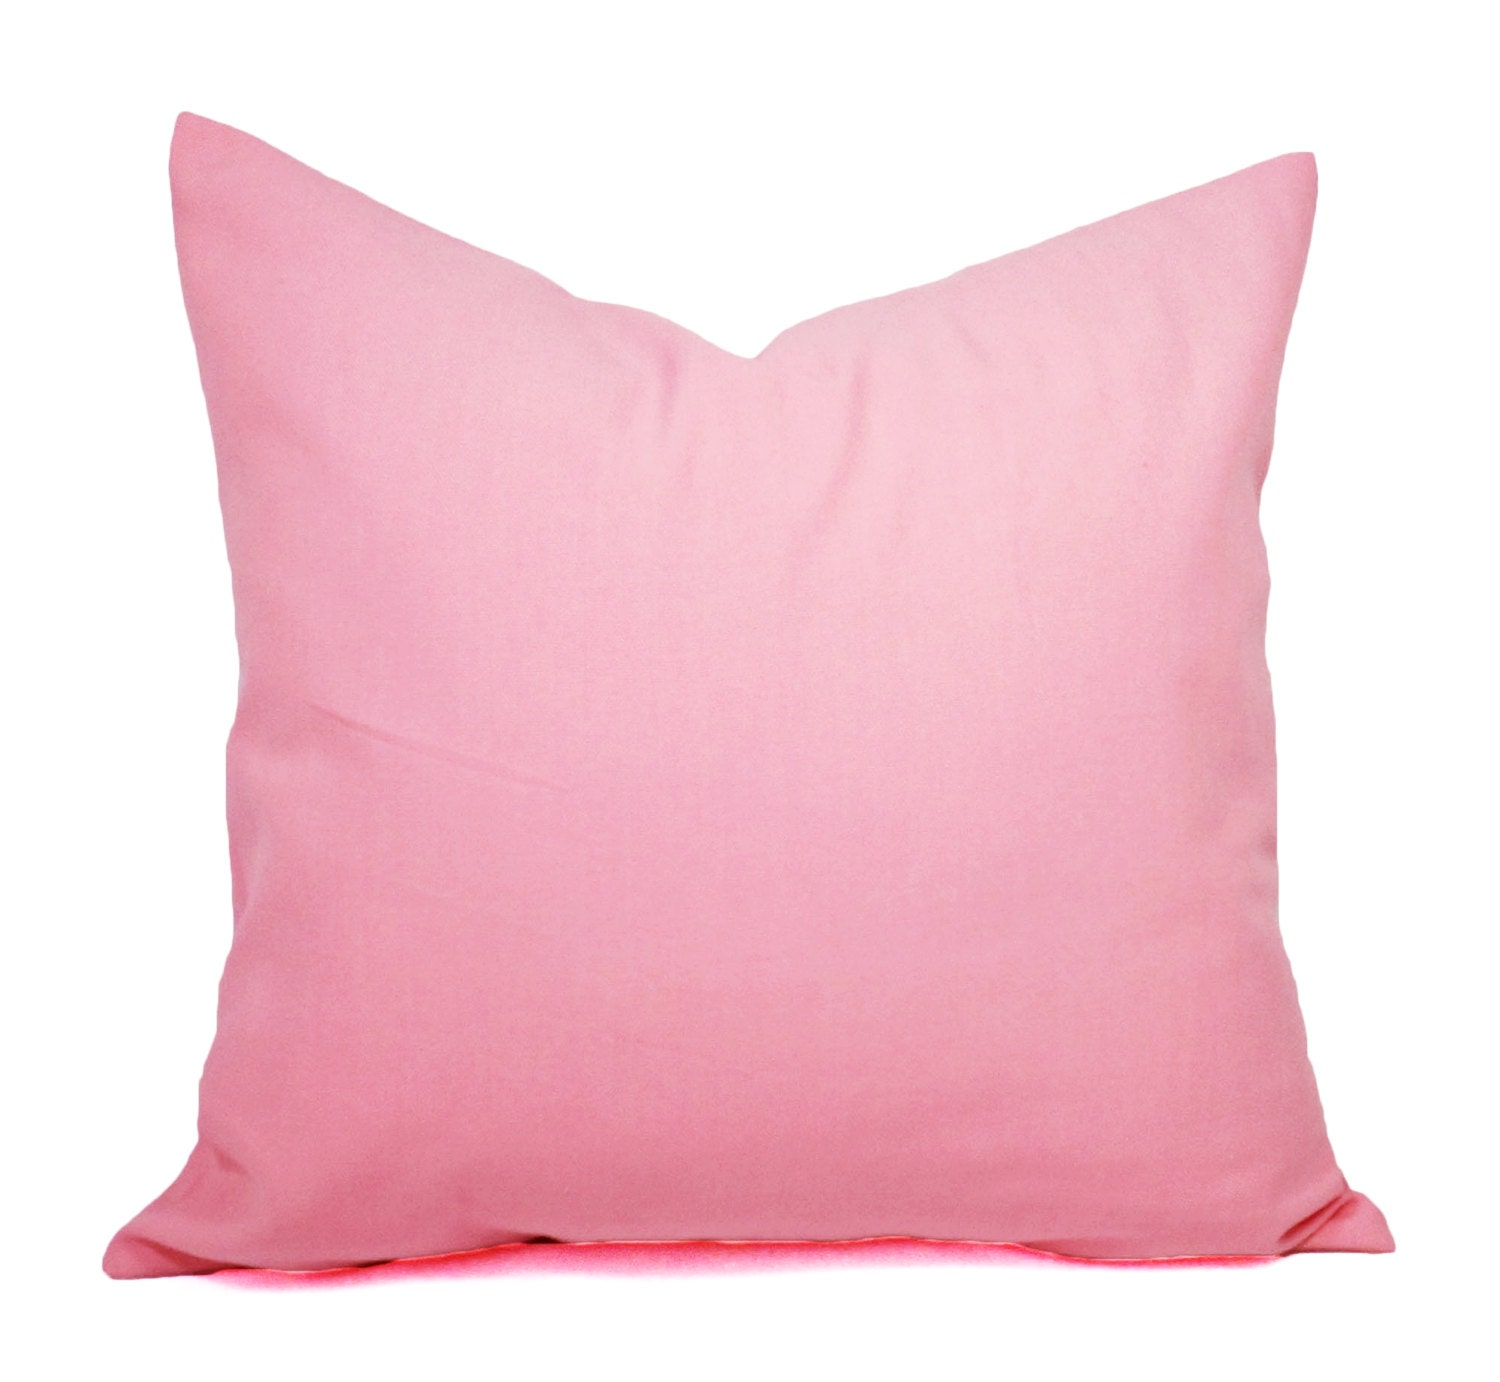 Baby Pink Decorative Pillows : Two Baby Pink Pillow Covers Solid Pink Pillows Pink Throw